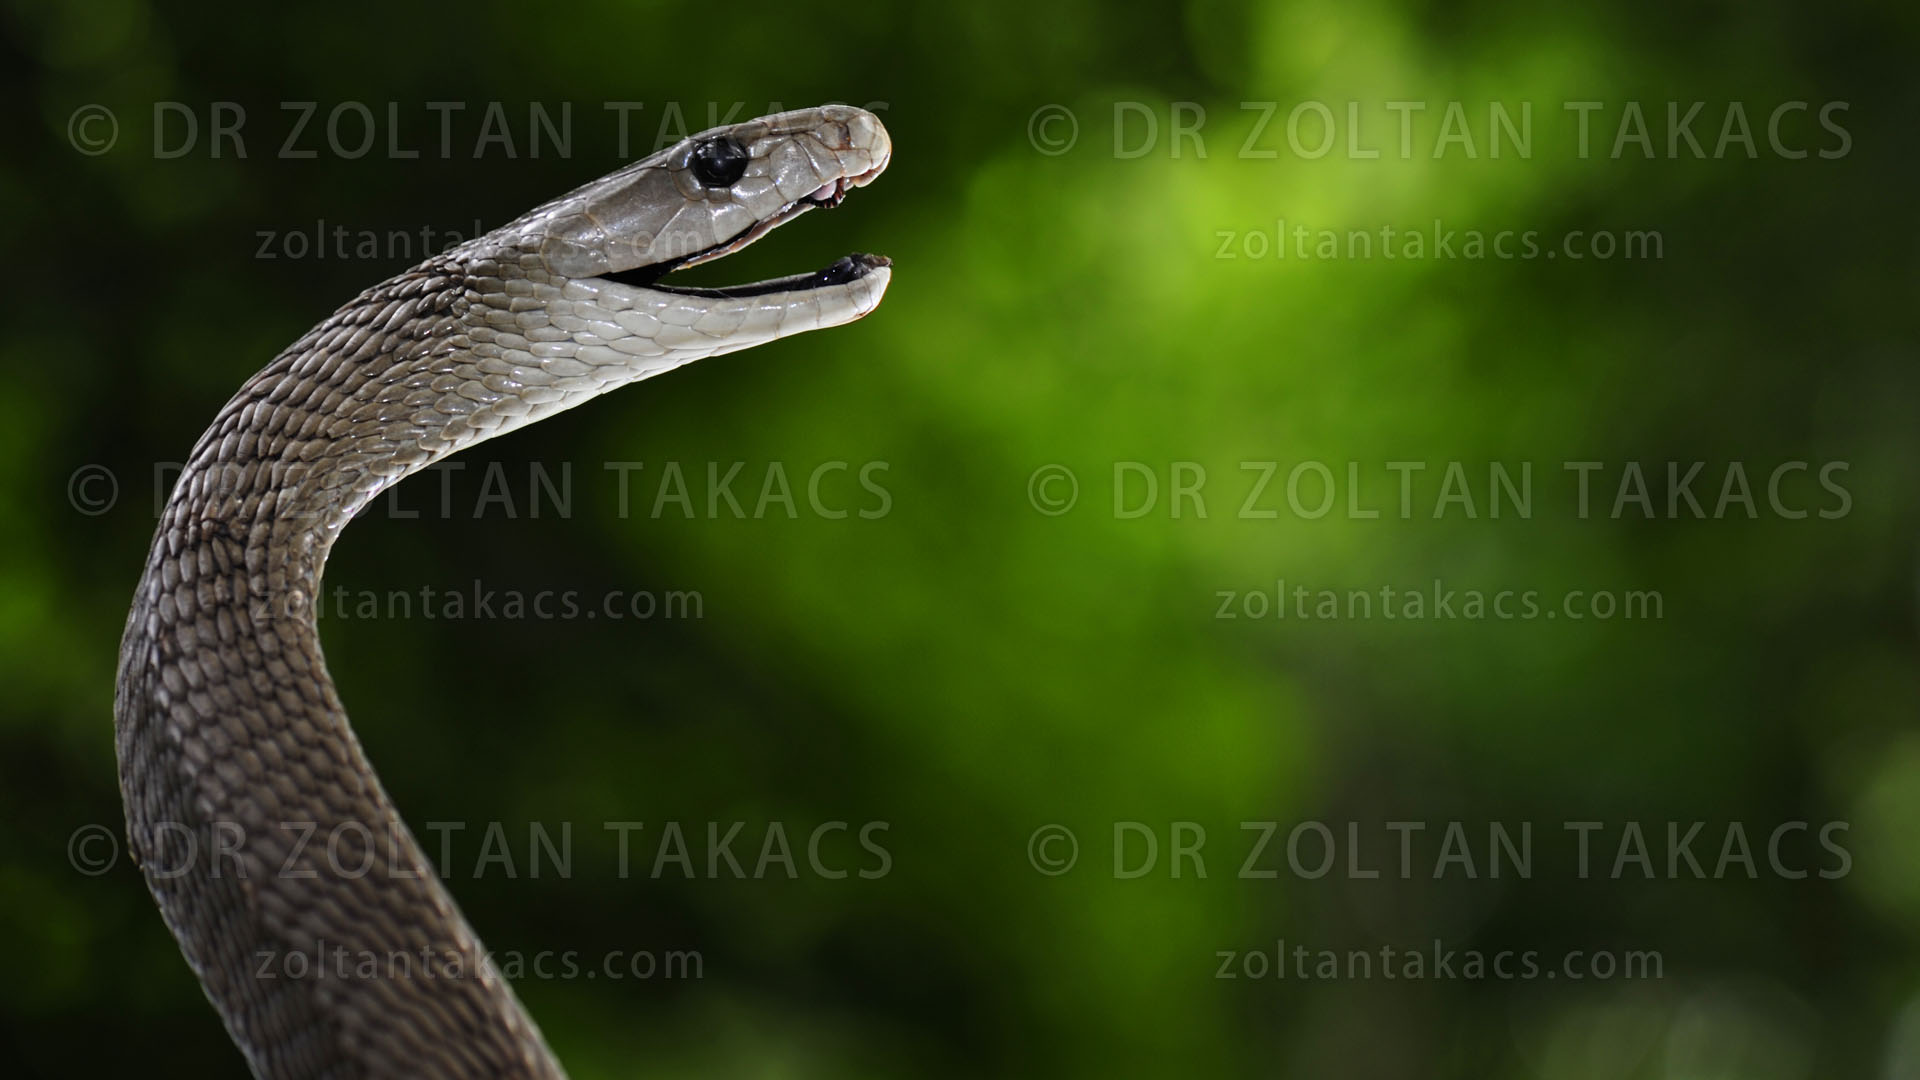 Black mamba (Dendoaspis polylepis, Elapidae, Squamata, Reptilia) is one of the deadliest venomous snake in the world. Large snake, large amount of venom, neurotoxic and cardiovascular effects, are all contributing to the dangerousness of this species. Dr. Zoltan Takacs.